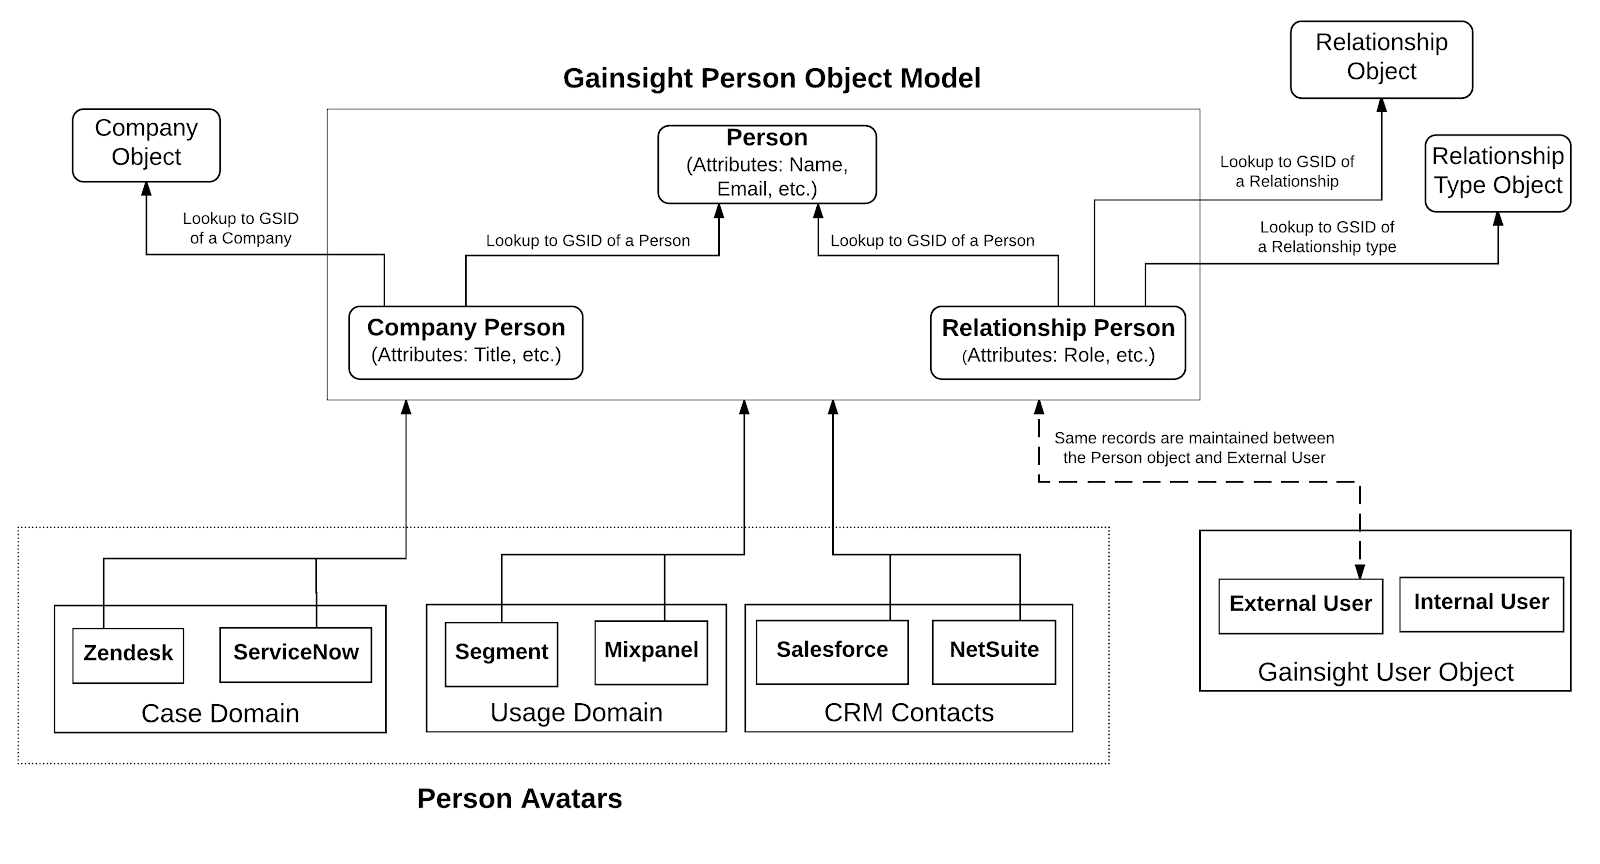 Gainsight person object model gainsight inc following image shows the person object model and its integration with other objects and avatars pooptronica Image collections